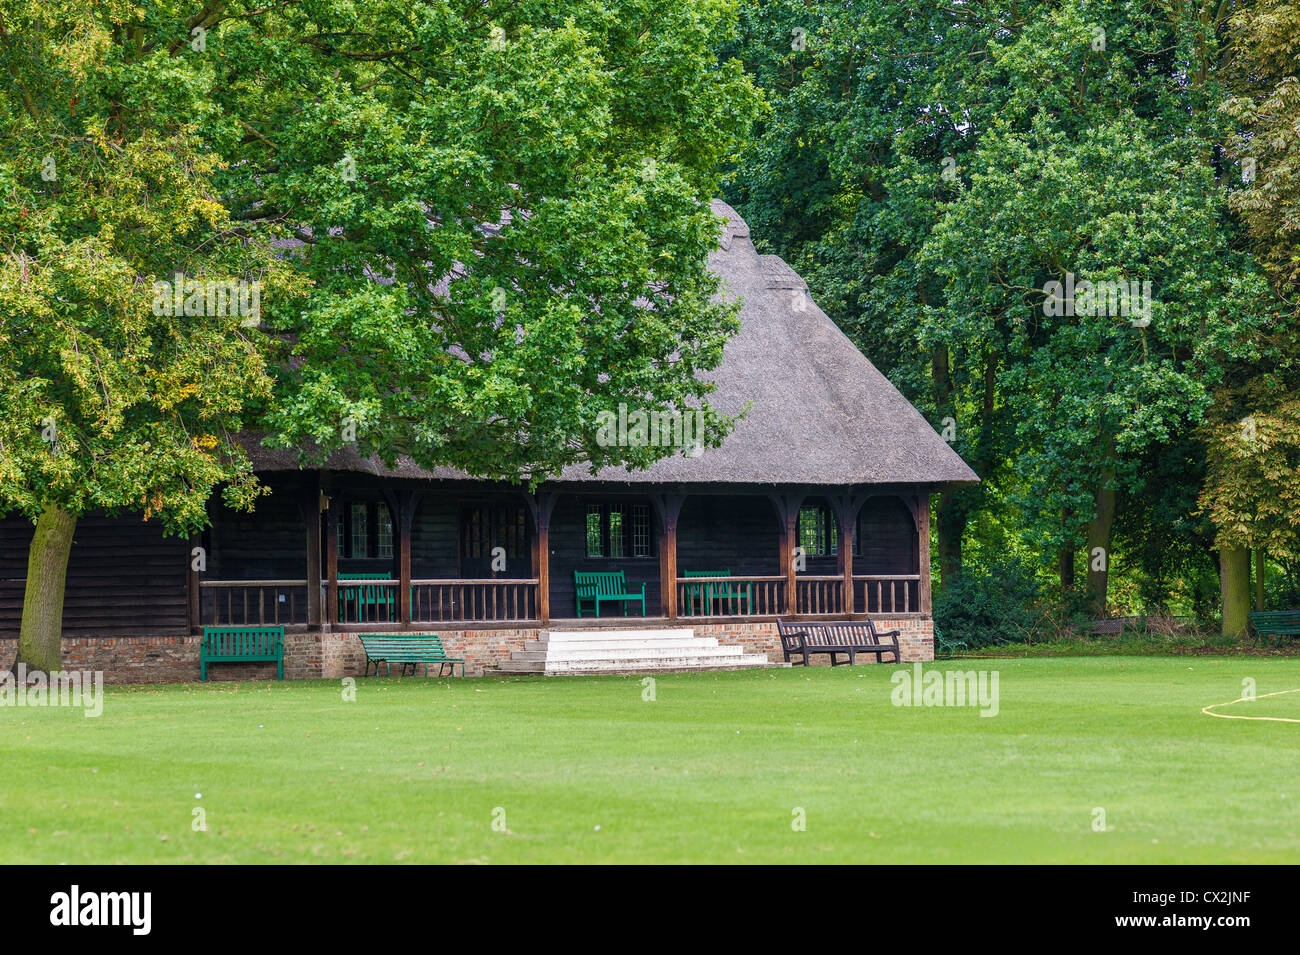 Cricket pavilion at Jesus college, university of Cambridge, England, UK. - Stock Image